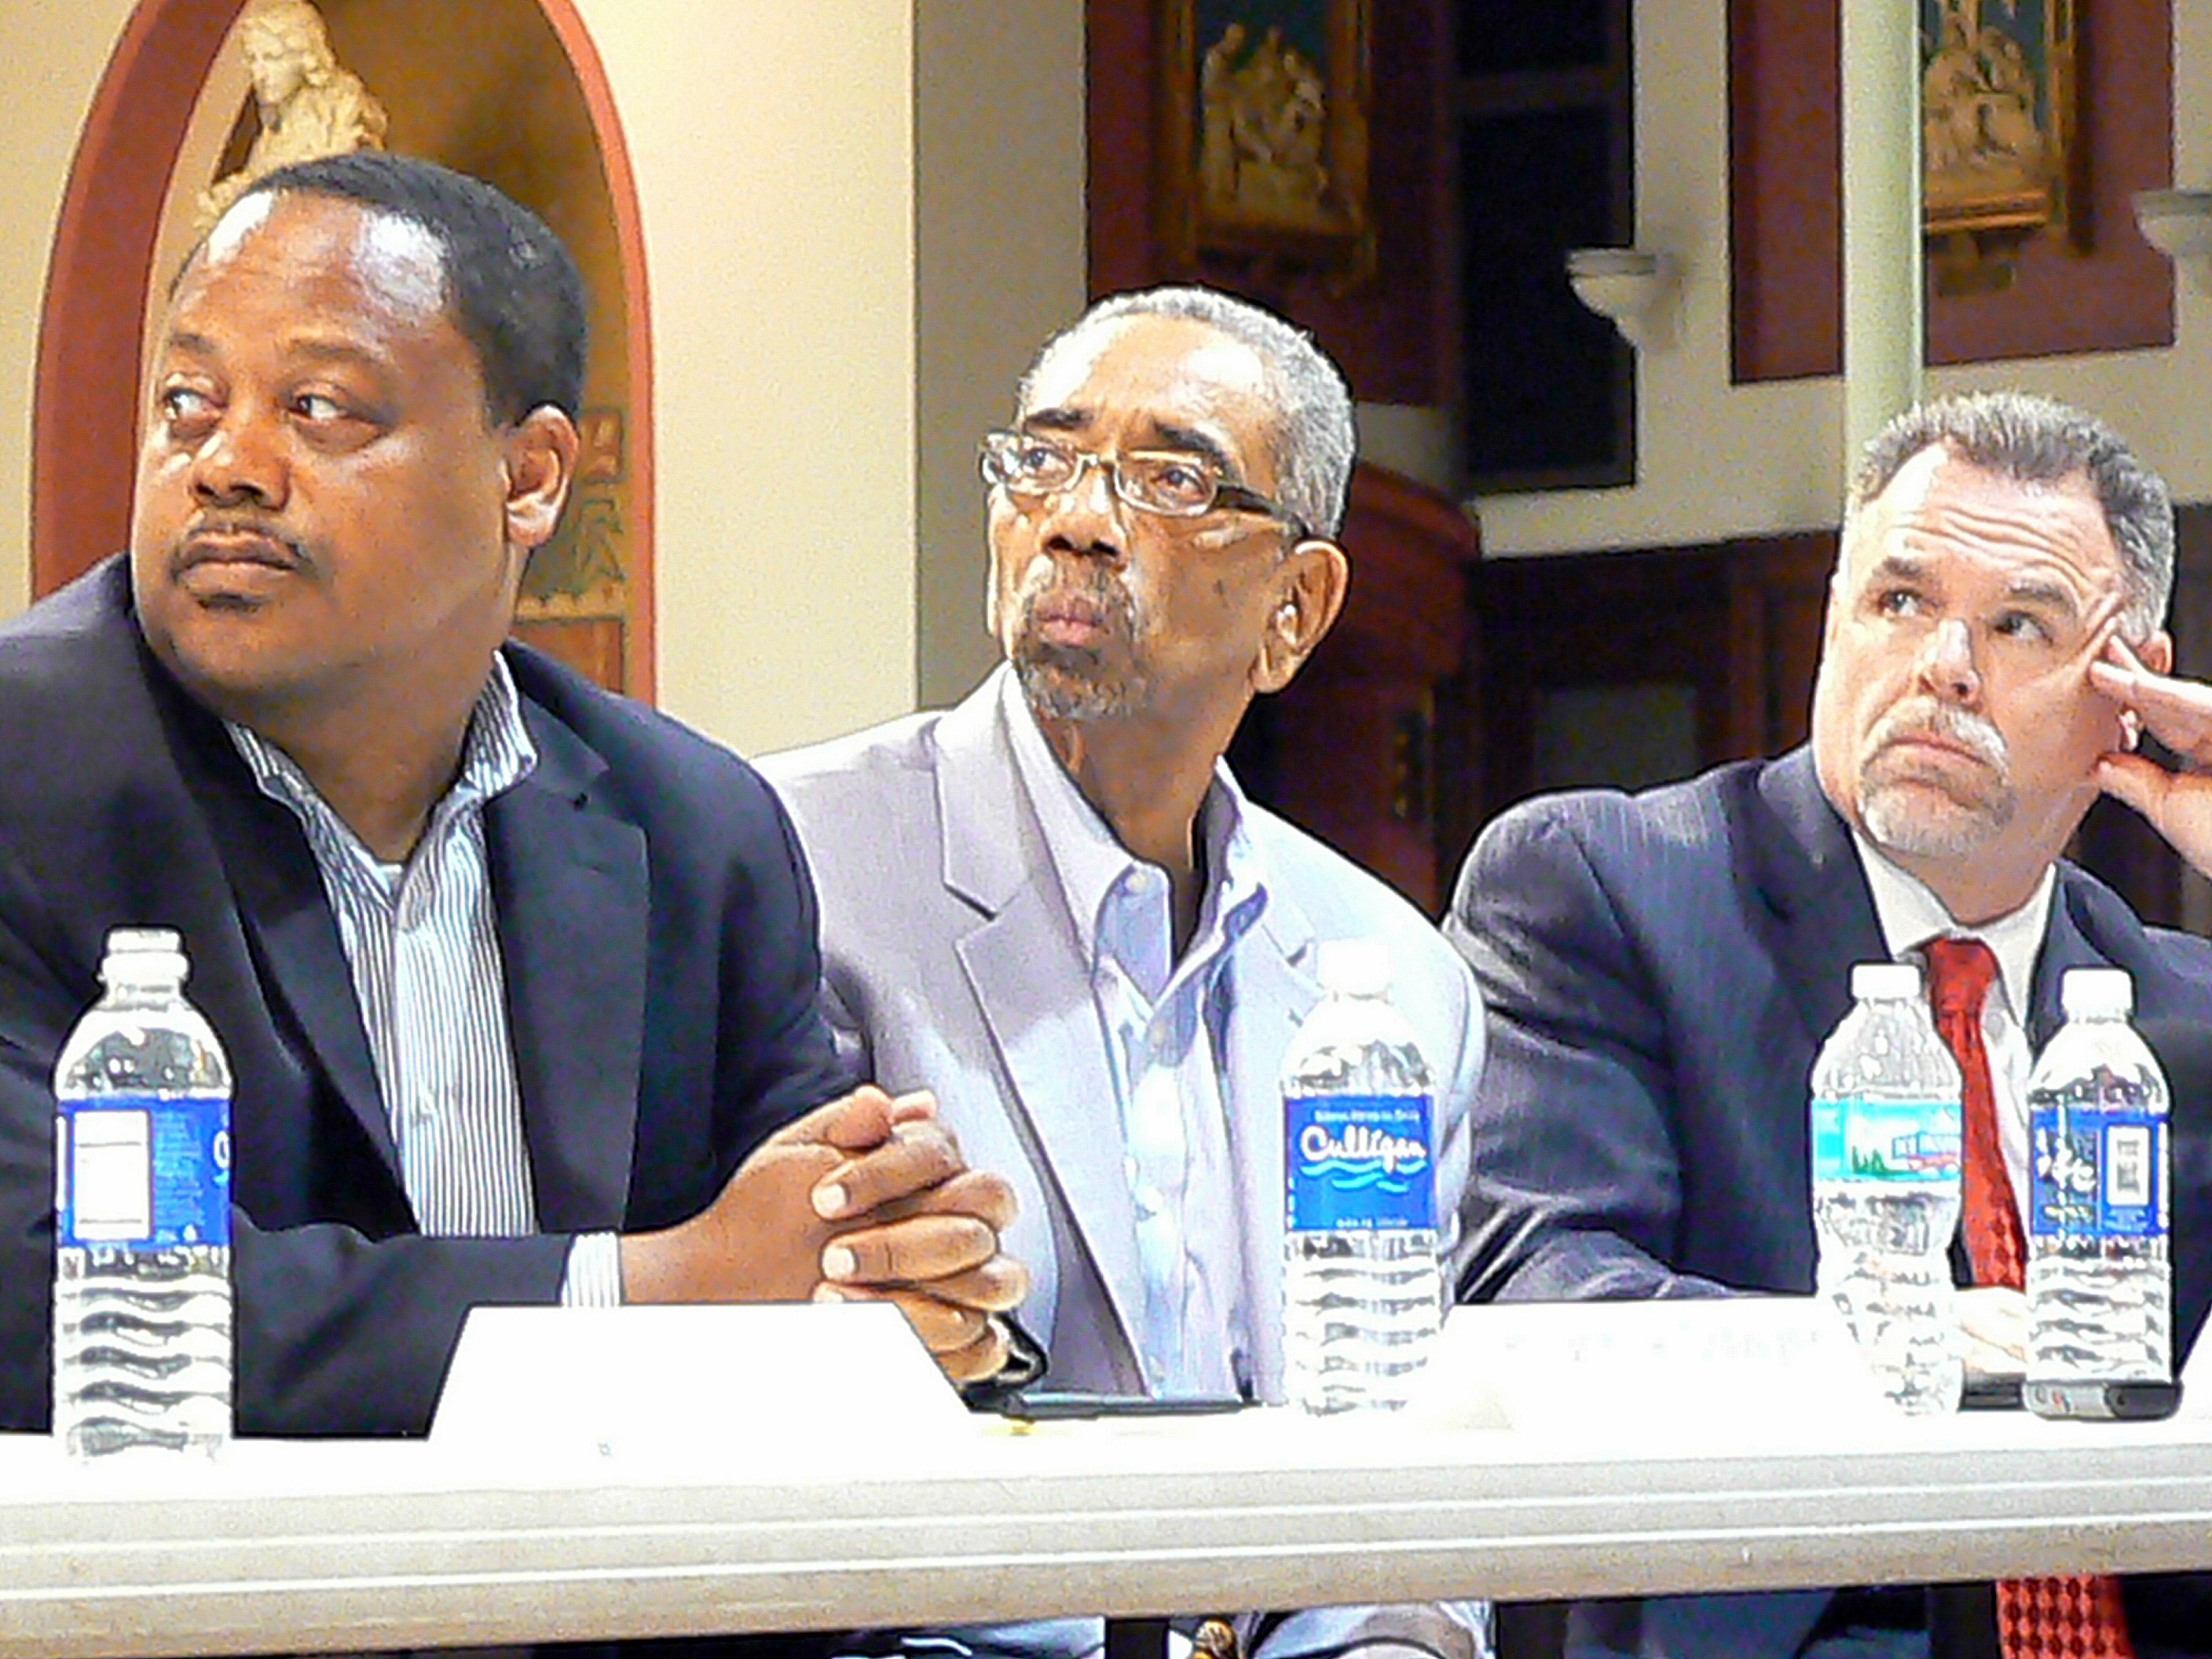 Sixth Ward Ald. Rod Sawyer, U.S. Congressman Bobby Rush, and Police Superindent Garry McCarthy listen to remarks from other law enforcement officials about reducing crime in Chatham.